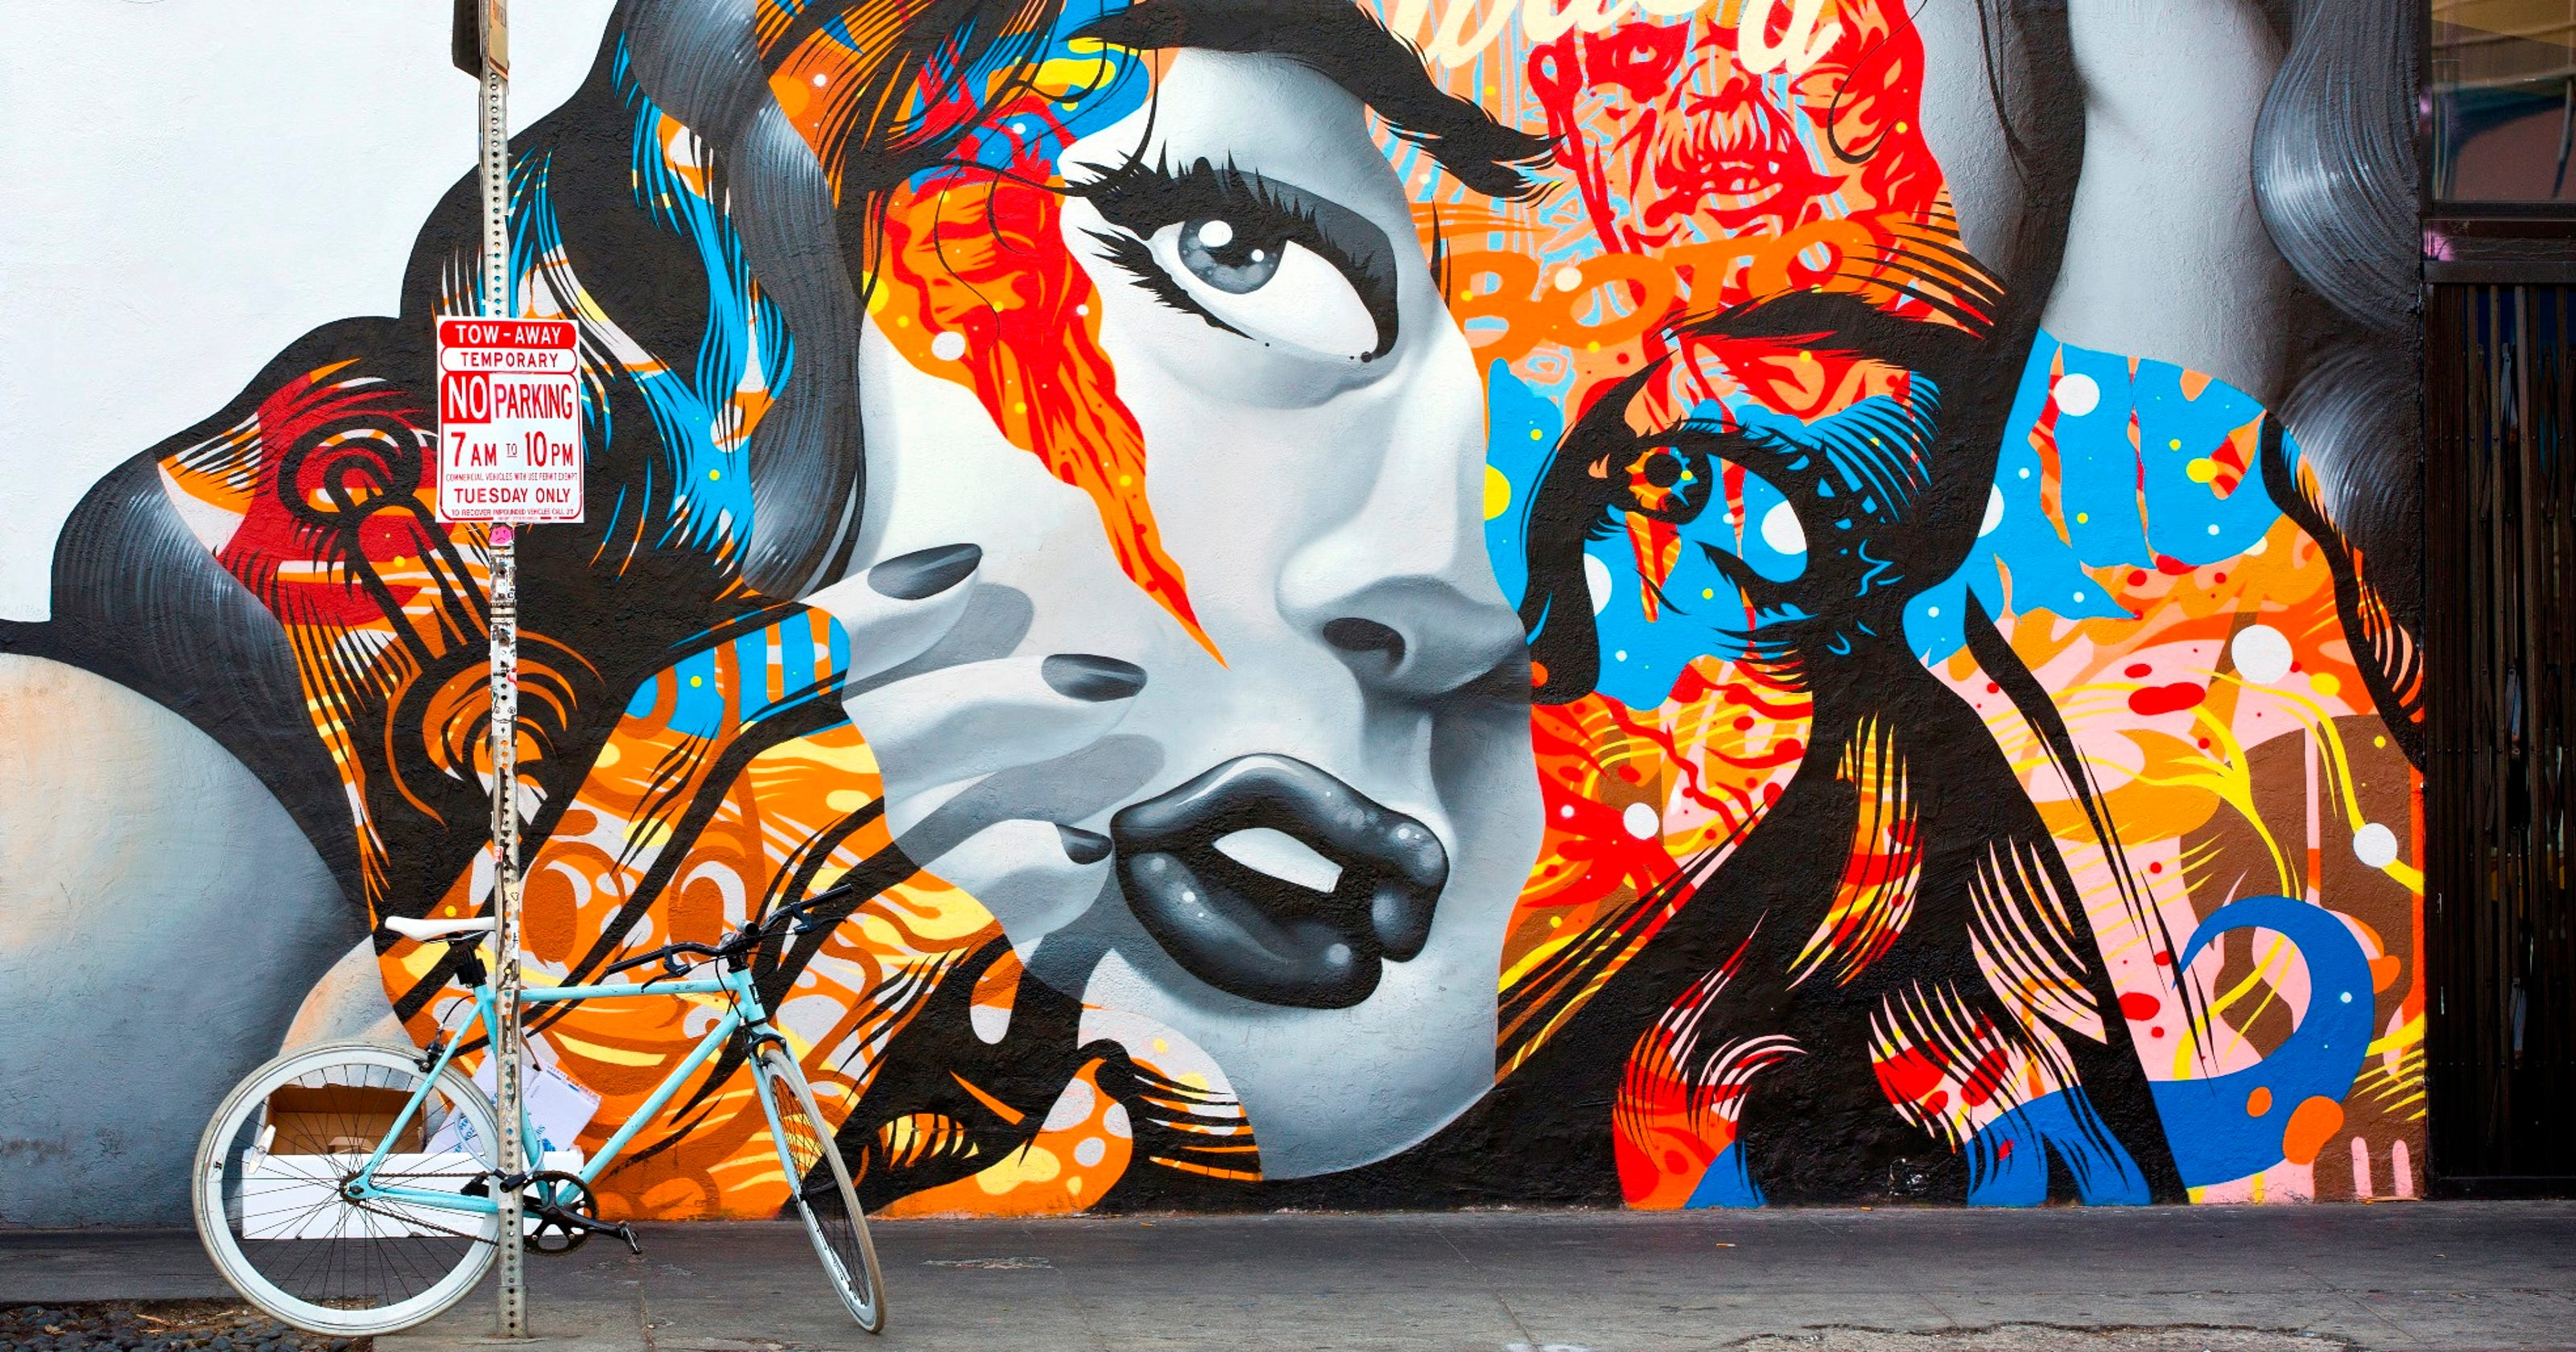 10Best: Cities To See Street Art